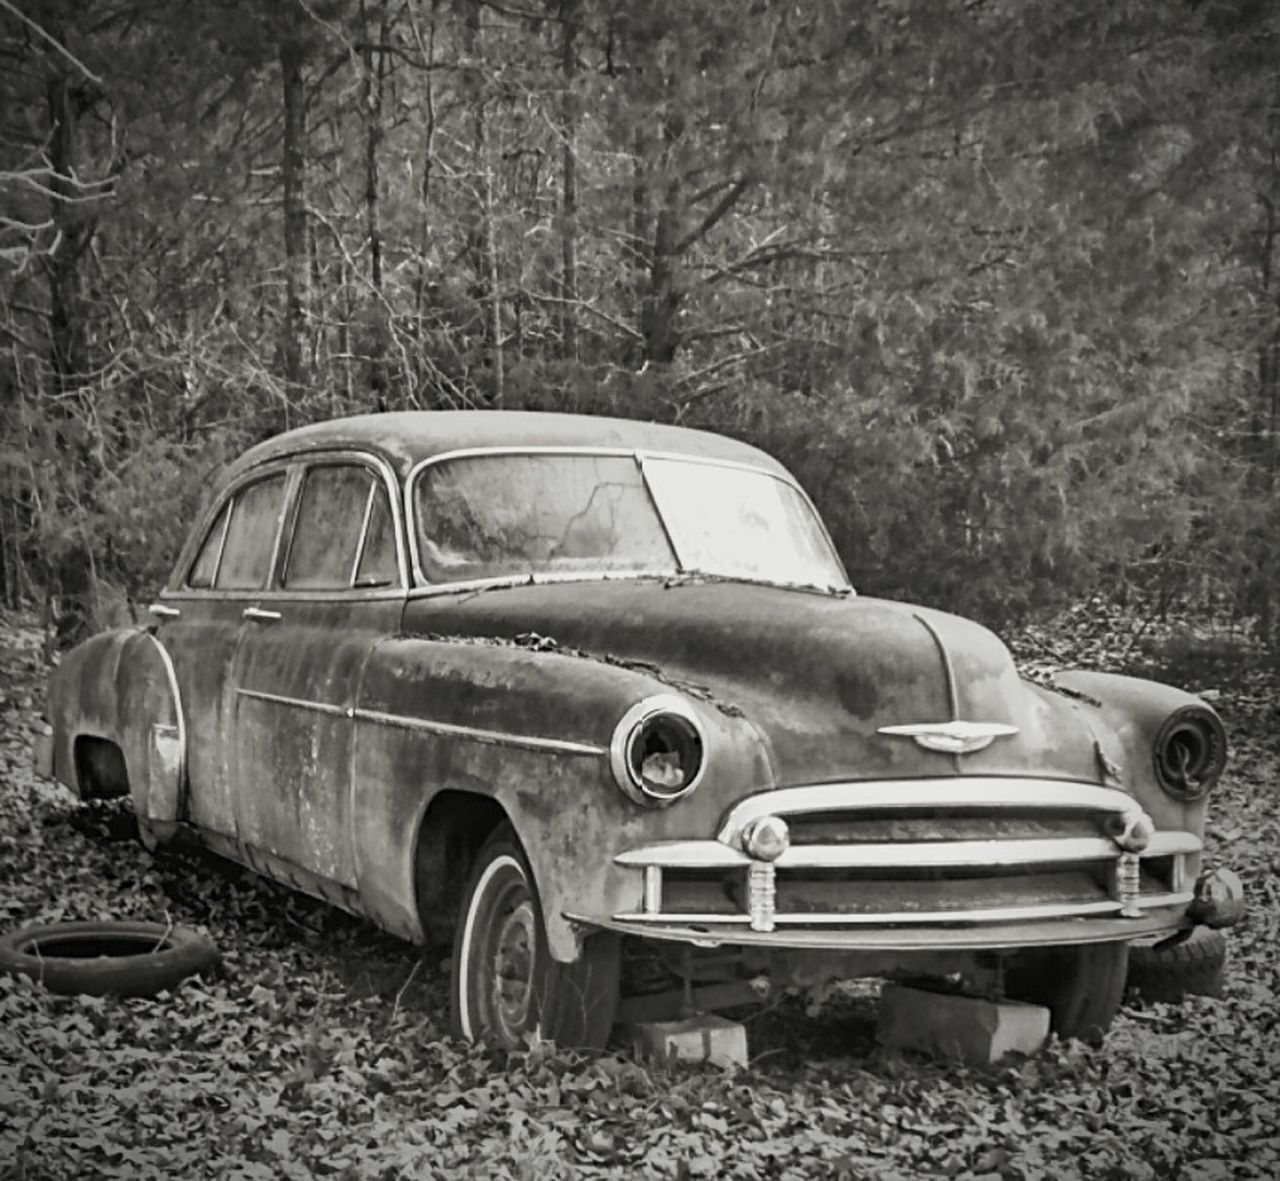 Even in its decayed state its still a beautiful car Old Rusty Car Old Cars Rusty Autos Rusted B&w Photography Black And White Photography Black And White Eye4photography  Check This Out Hello World Oldcars Tadaa Community Blackandwhite Mybackyard Black & White Taking Photos Eyeemphotography Bw_collection Old Car Rusty Black And White Collection  EyeEm Gallery Fine Art Photography Rusty Car My Favorite Photo